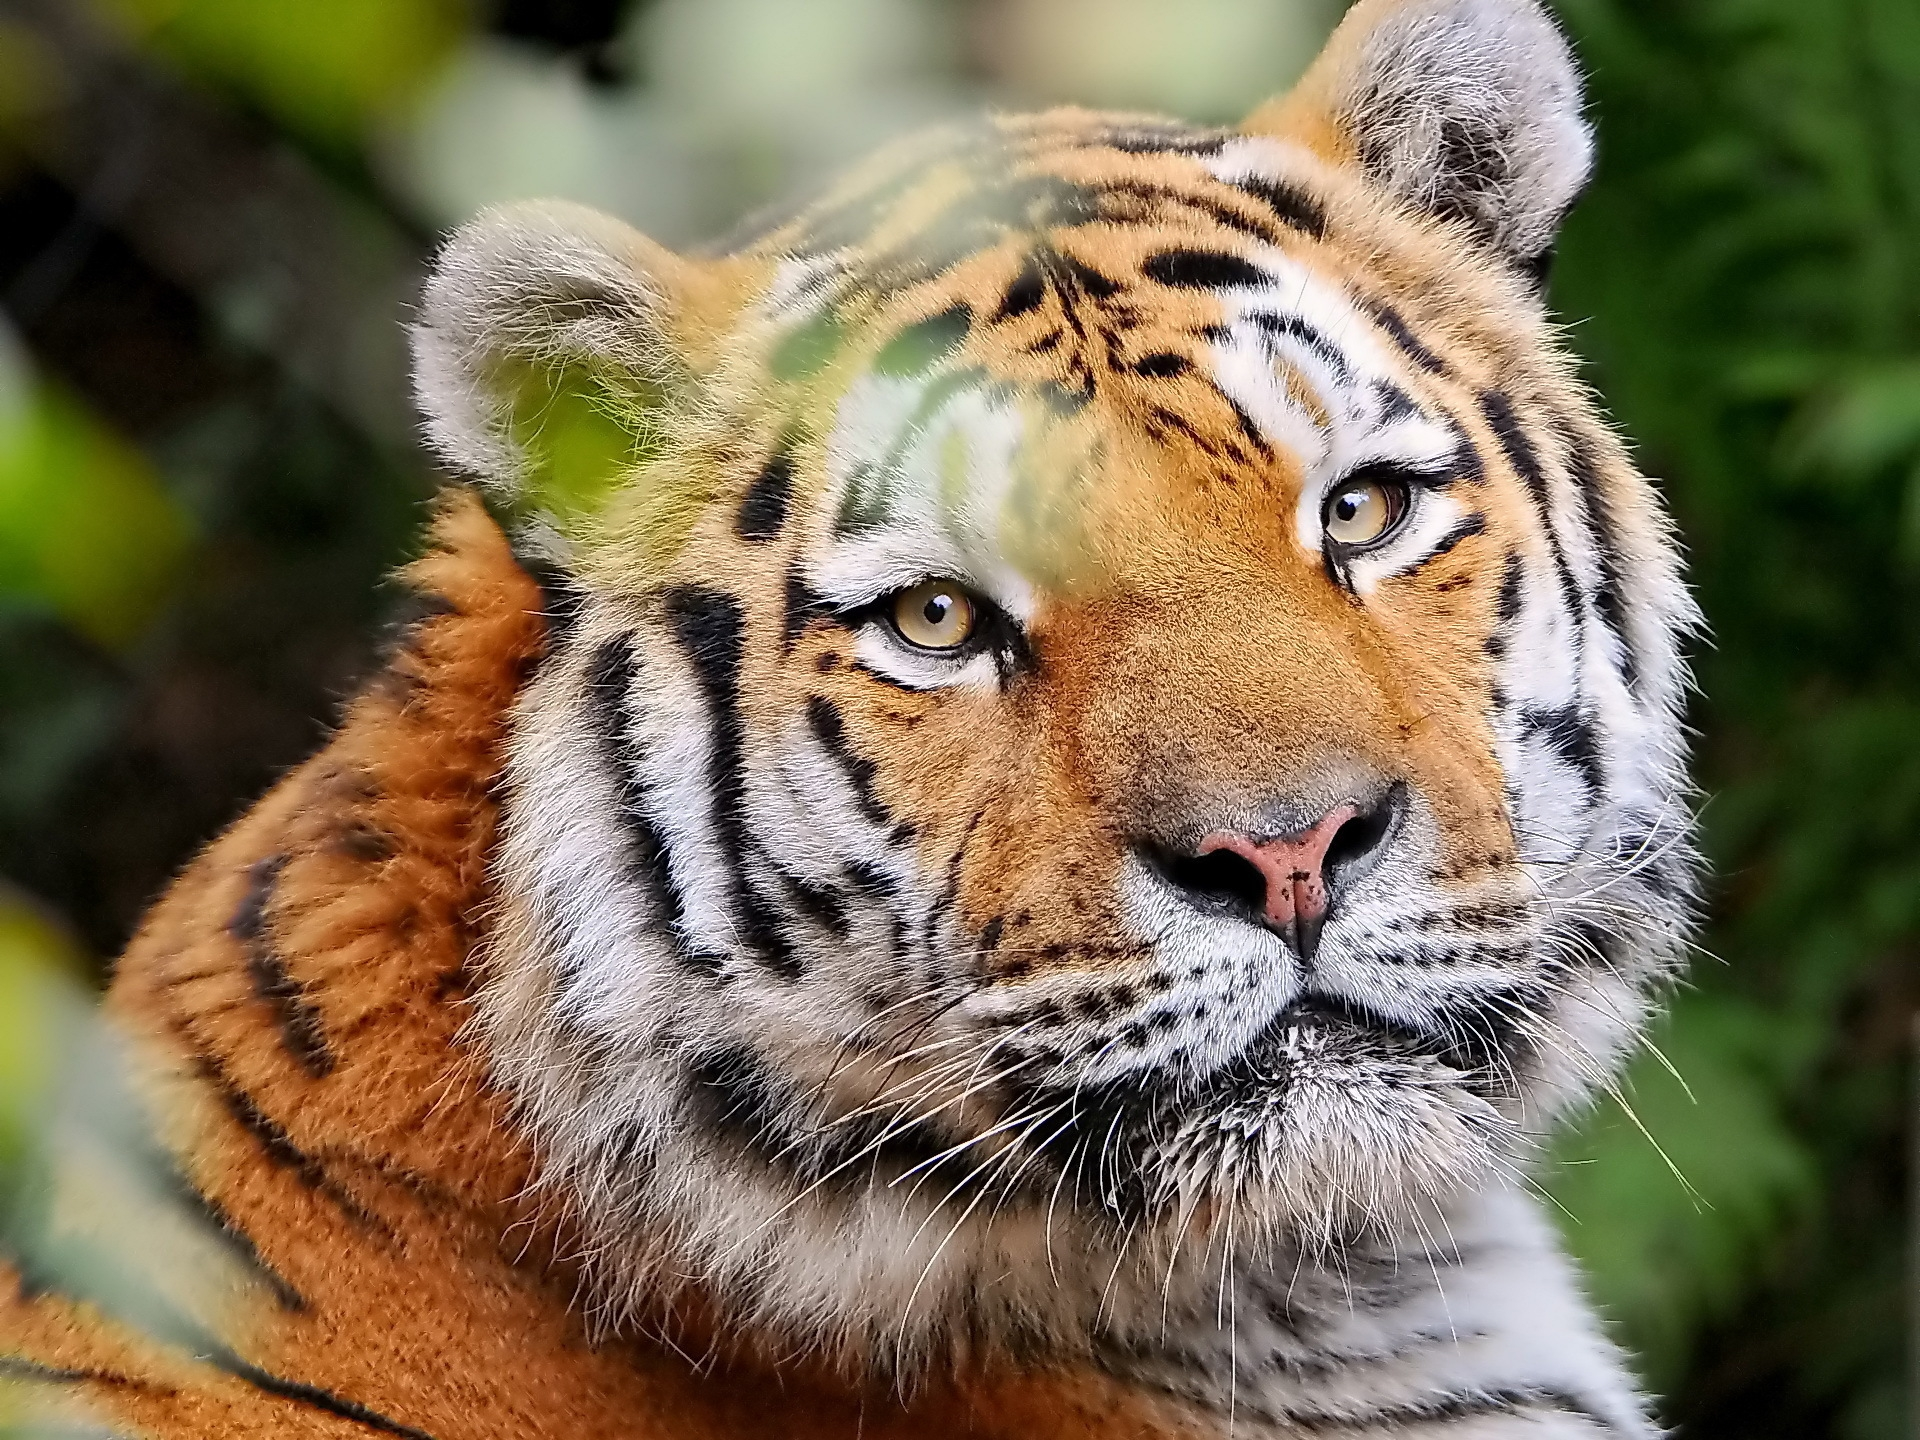 140731 download wallpaper Animals, Tiger, Muzzle, Young, Sight, Opinion, Striped screensavers and pictures for free